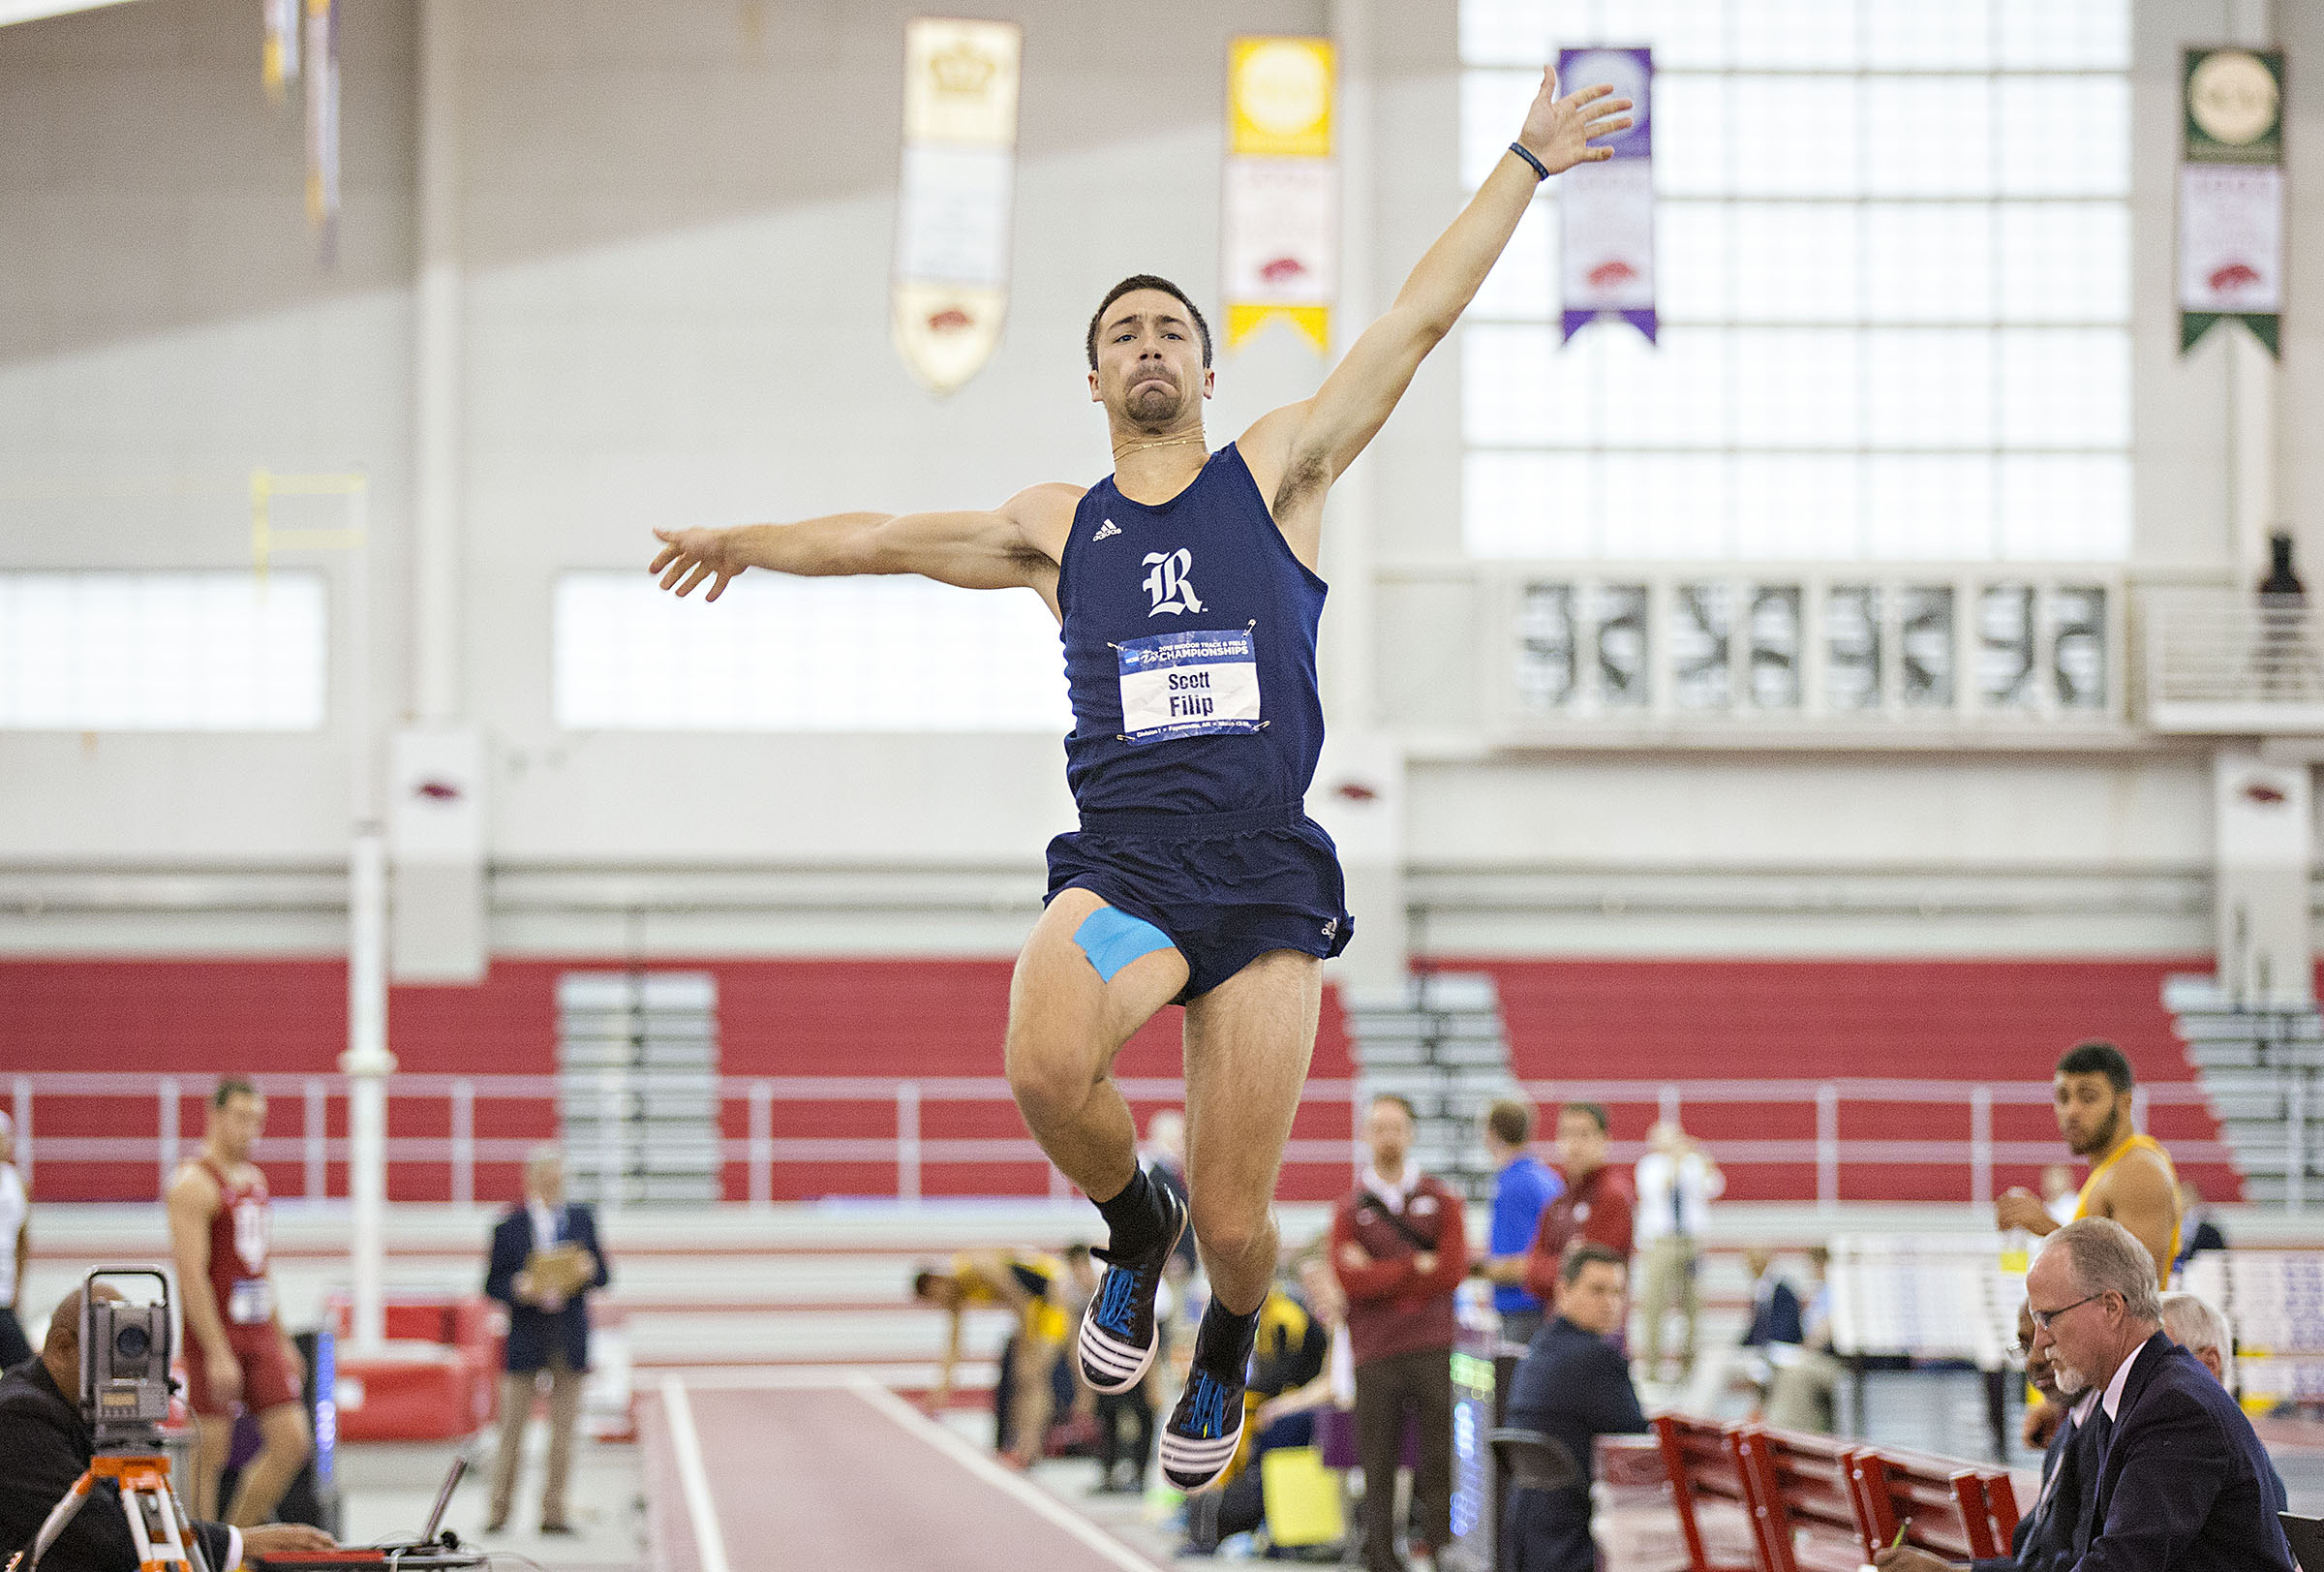 Scott Filip is in fifth place in the heptathlon at the NCAA Indoor Championships.